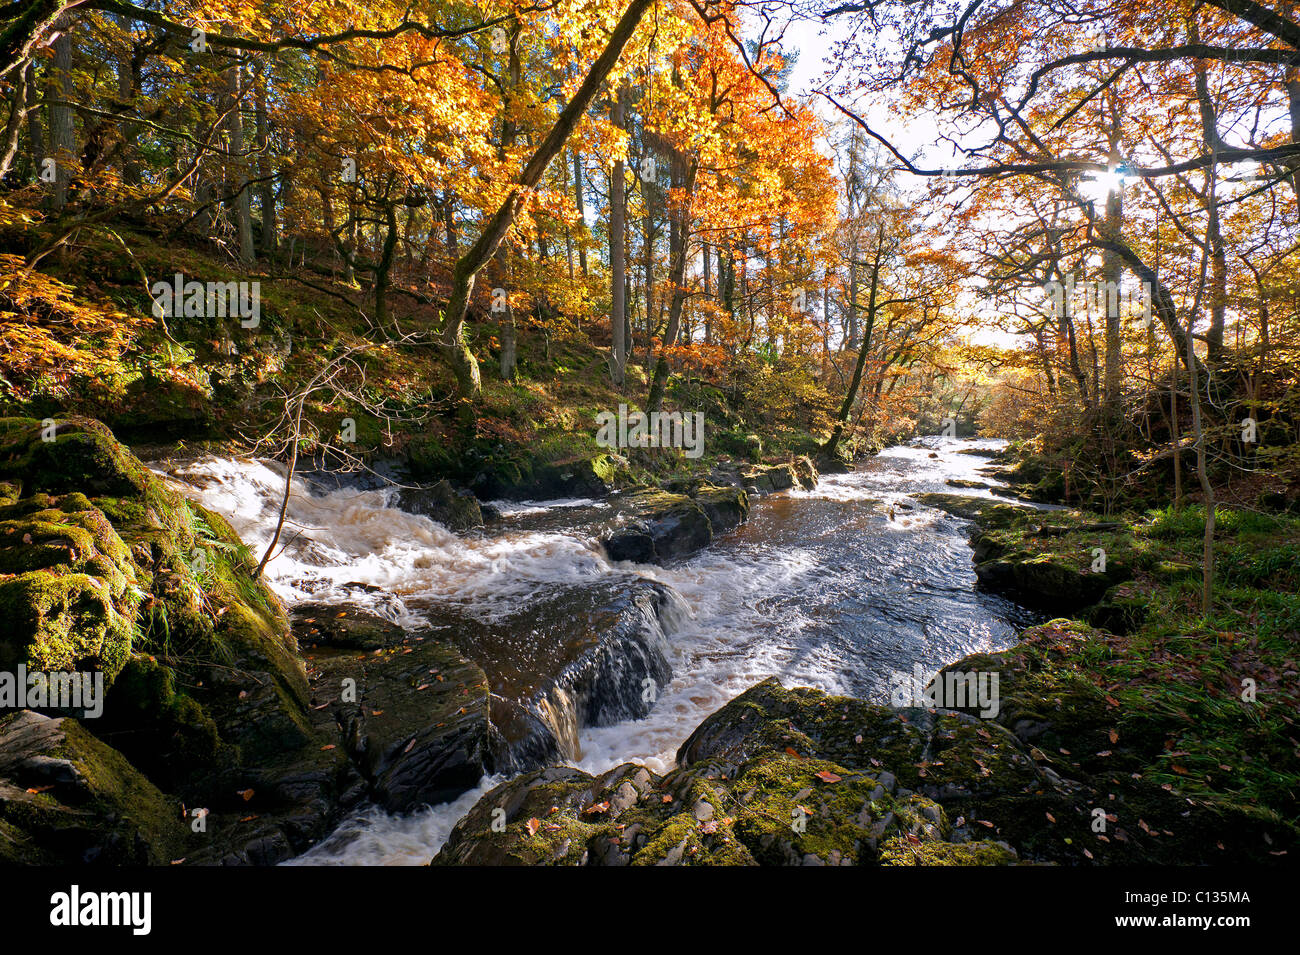 Burn of The Holy Linn near balmaclellan in autumn - Stock Image